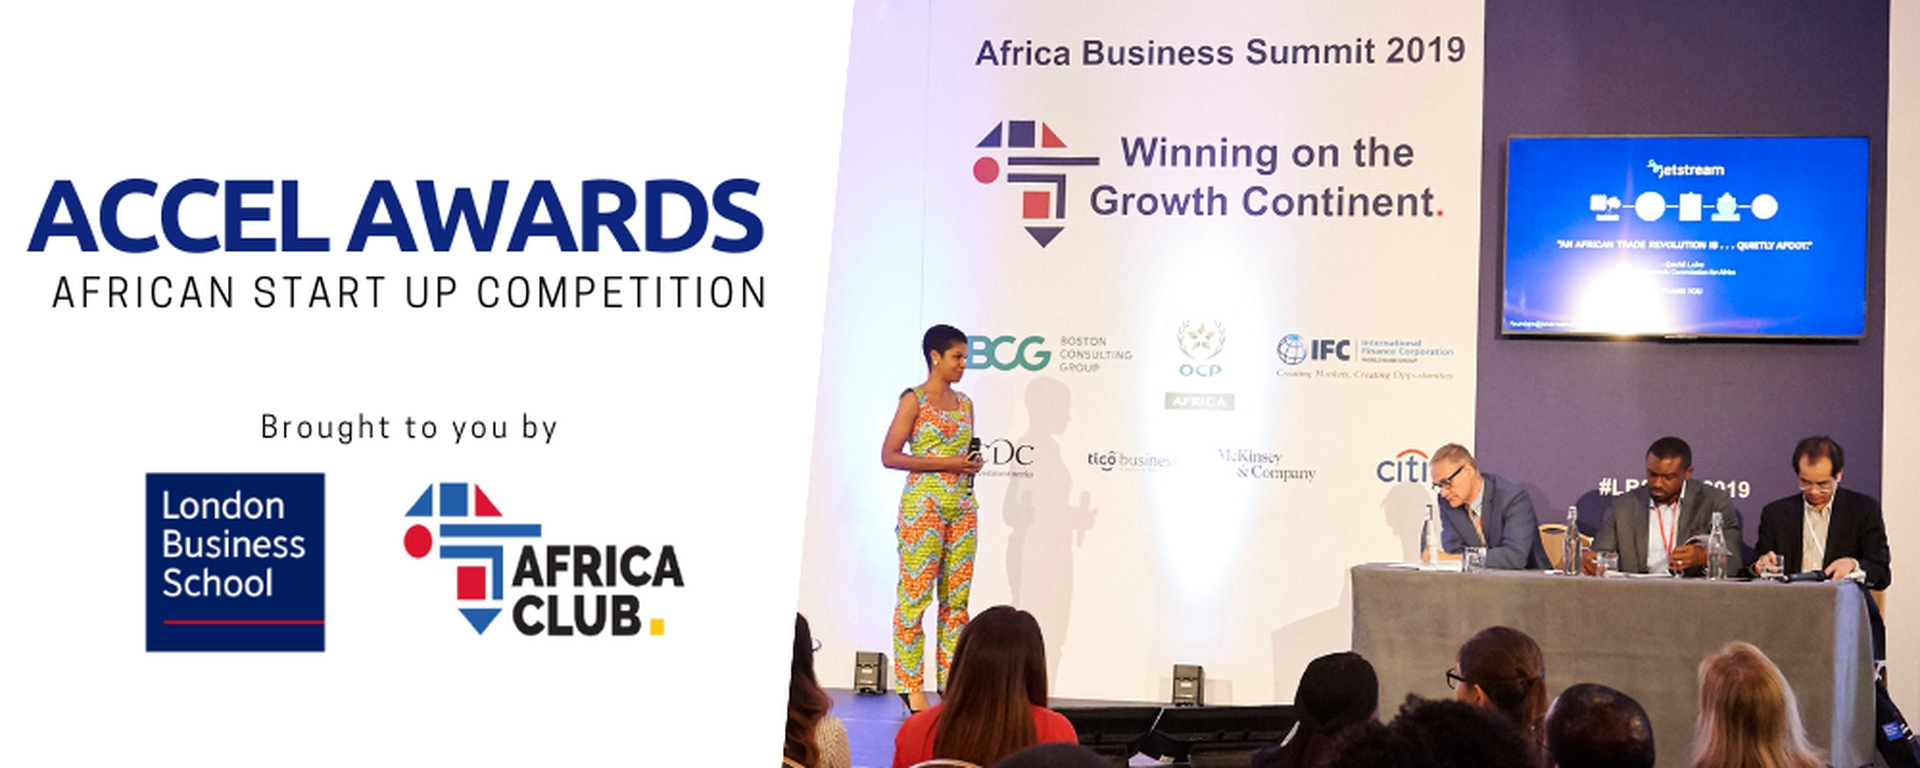 London Business School Africa Club - ACCEL Awards Movemeback African initiative cover image